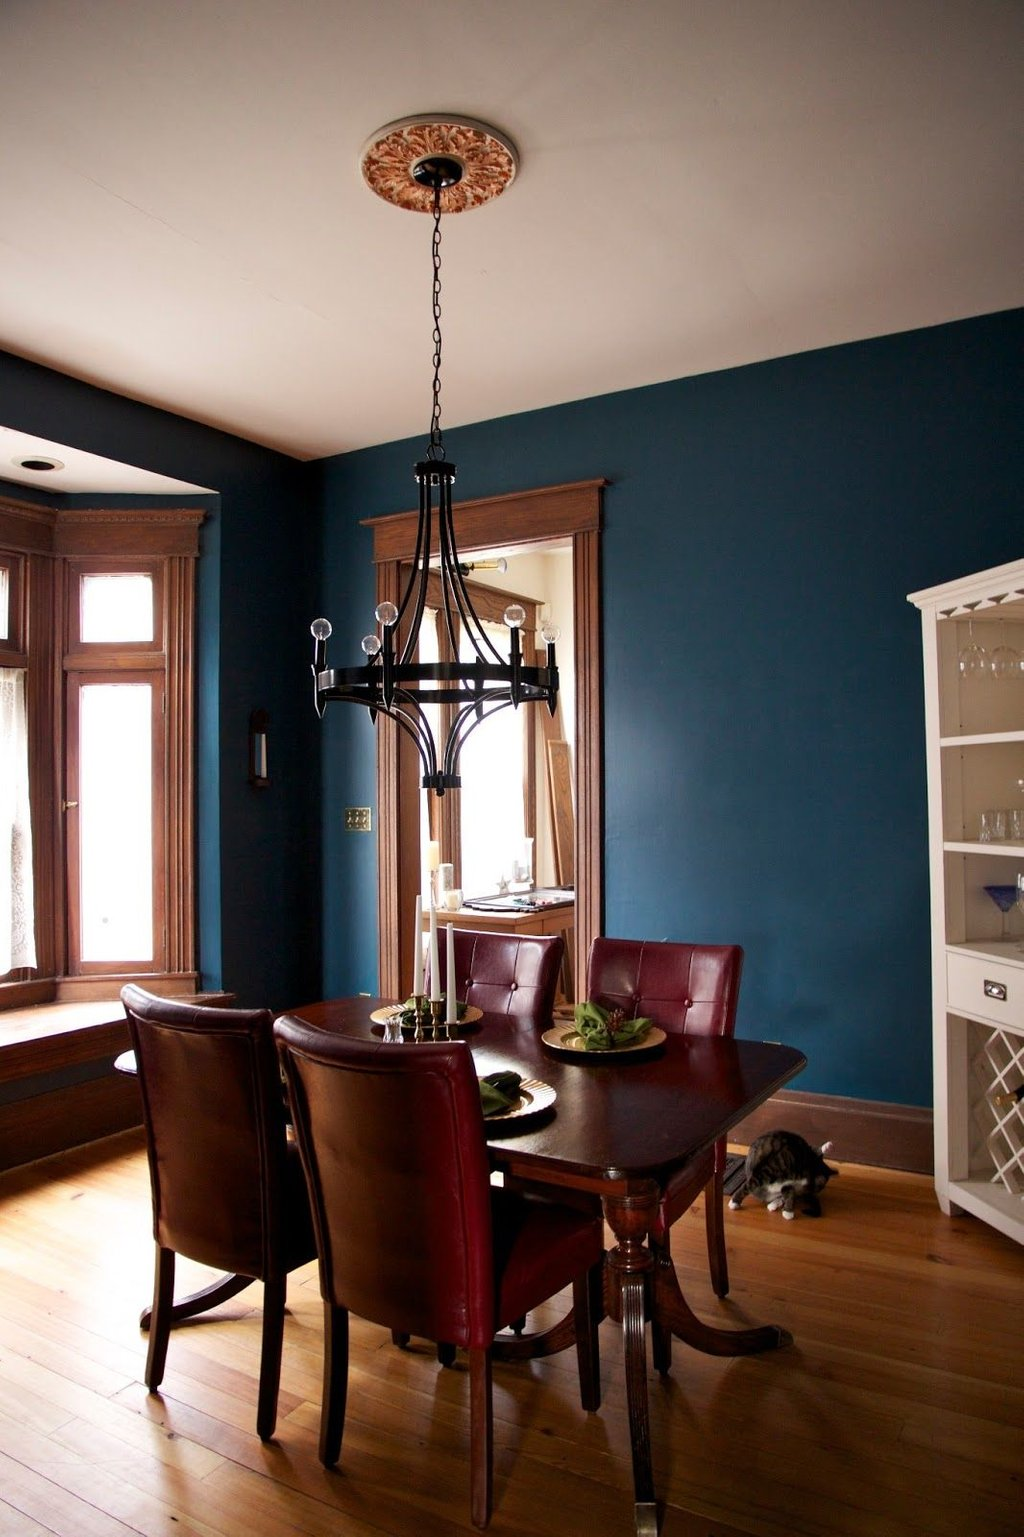 Dark Teal Wall Paint Unpainted Wooden Trim Color Design For House Interior Dining Room